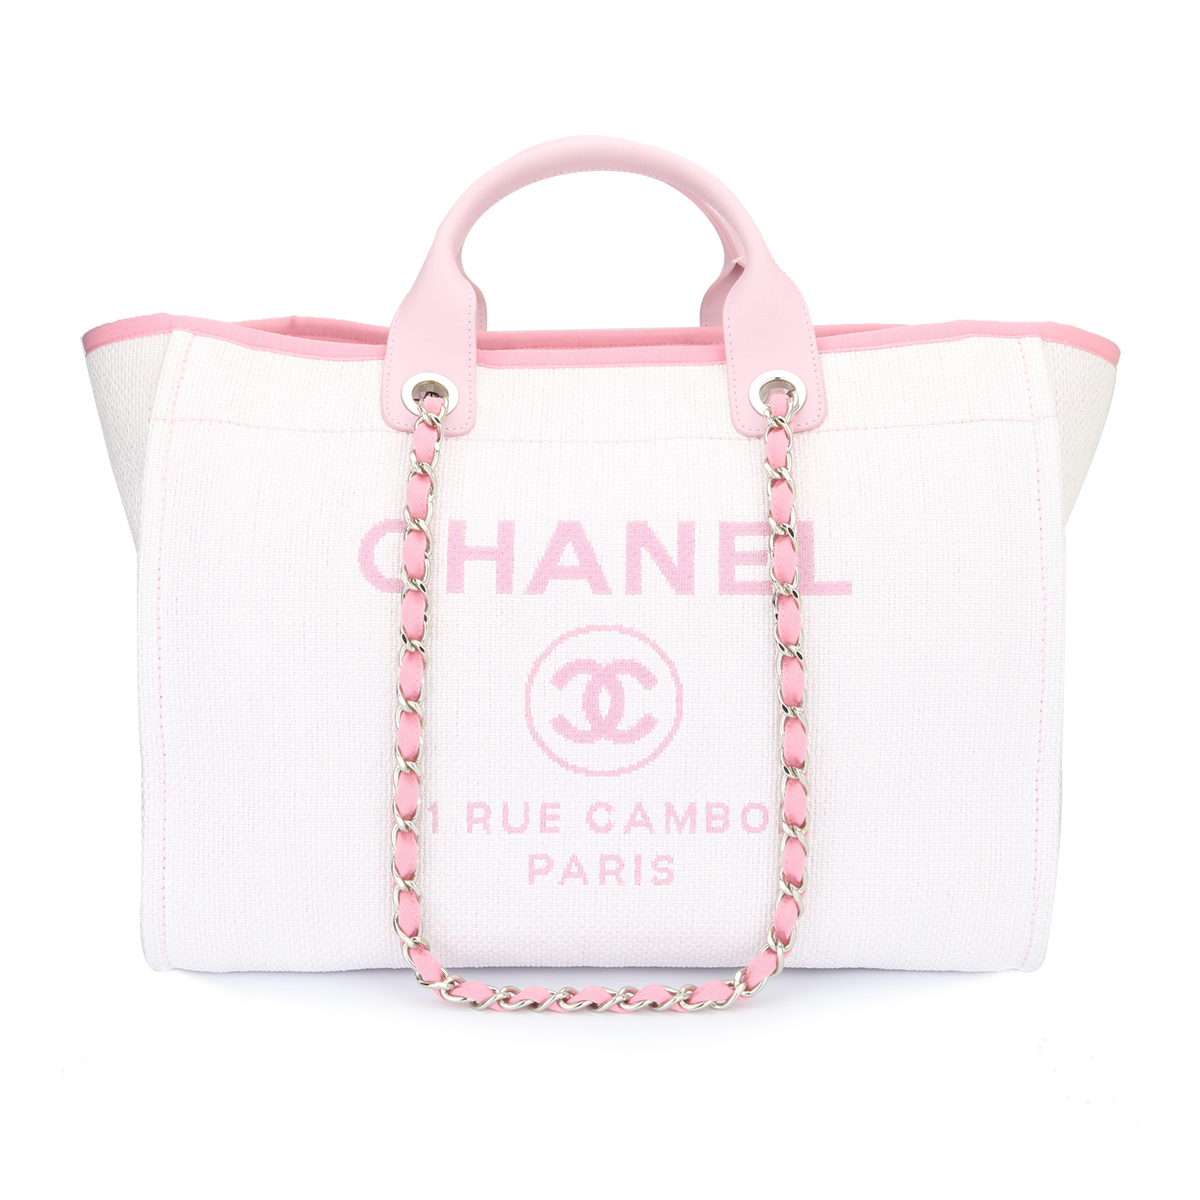 5ba0f3d9693 Home chanel deauville tote pink canvas large silver hardware  jpg  1200x1200 White chanel deauville tote